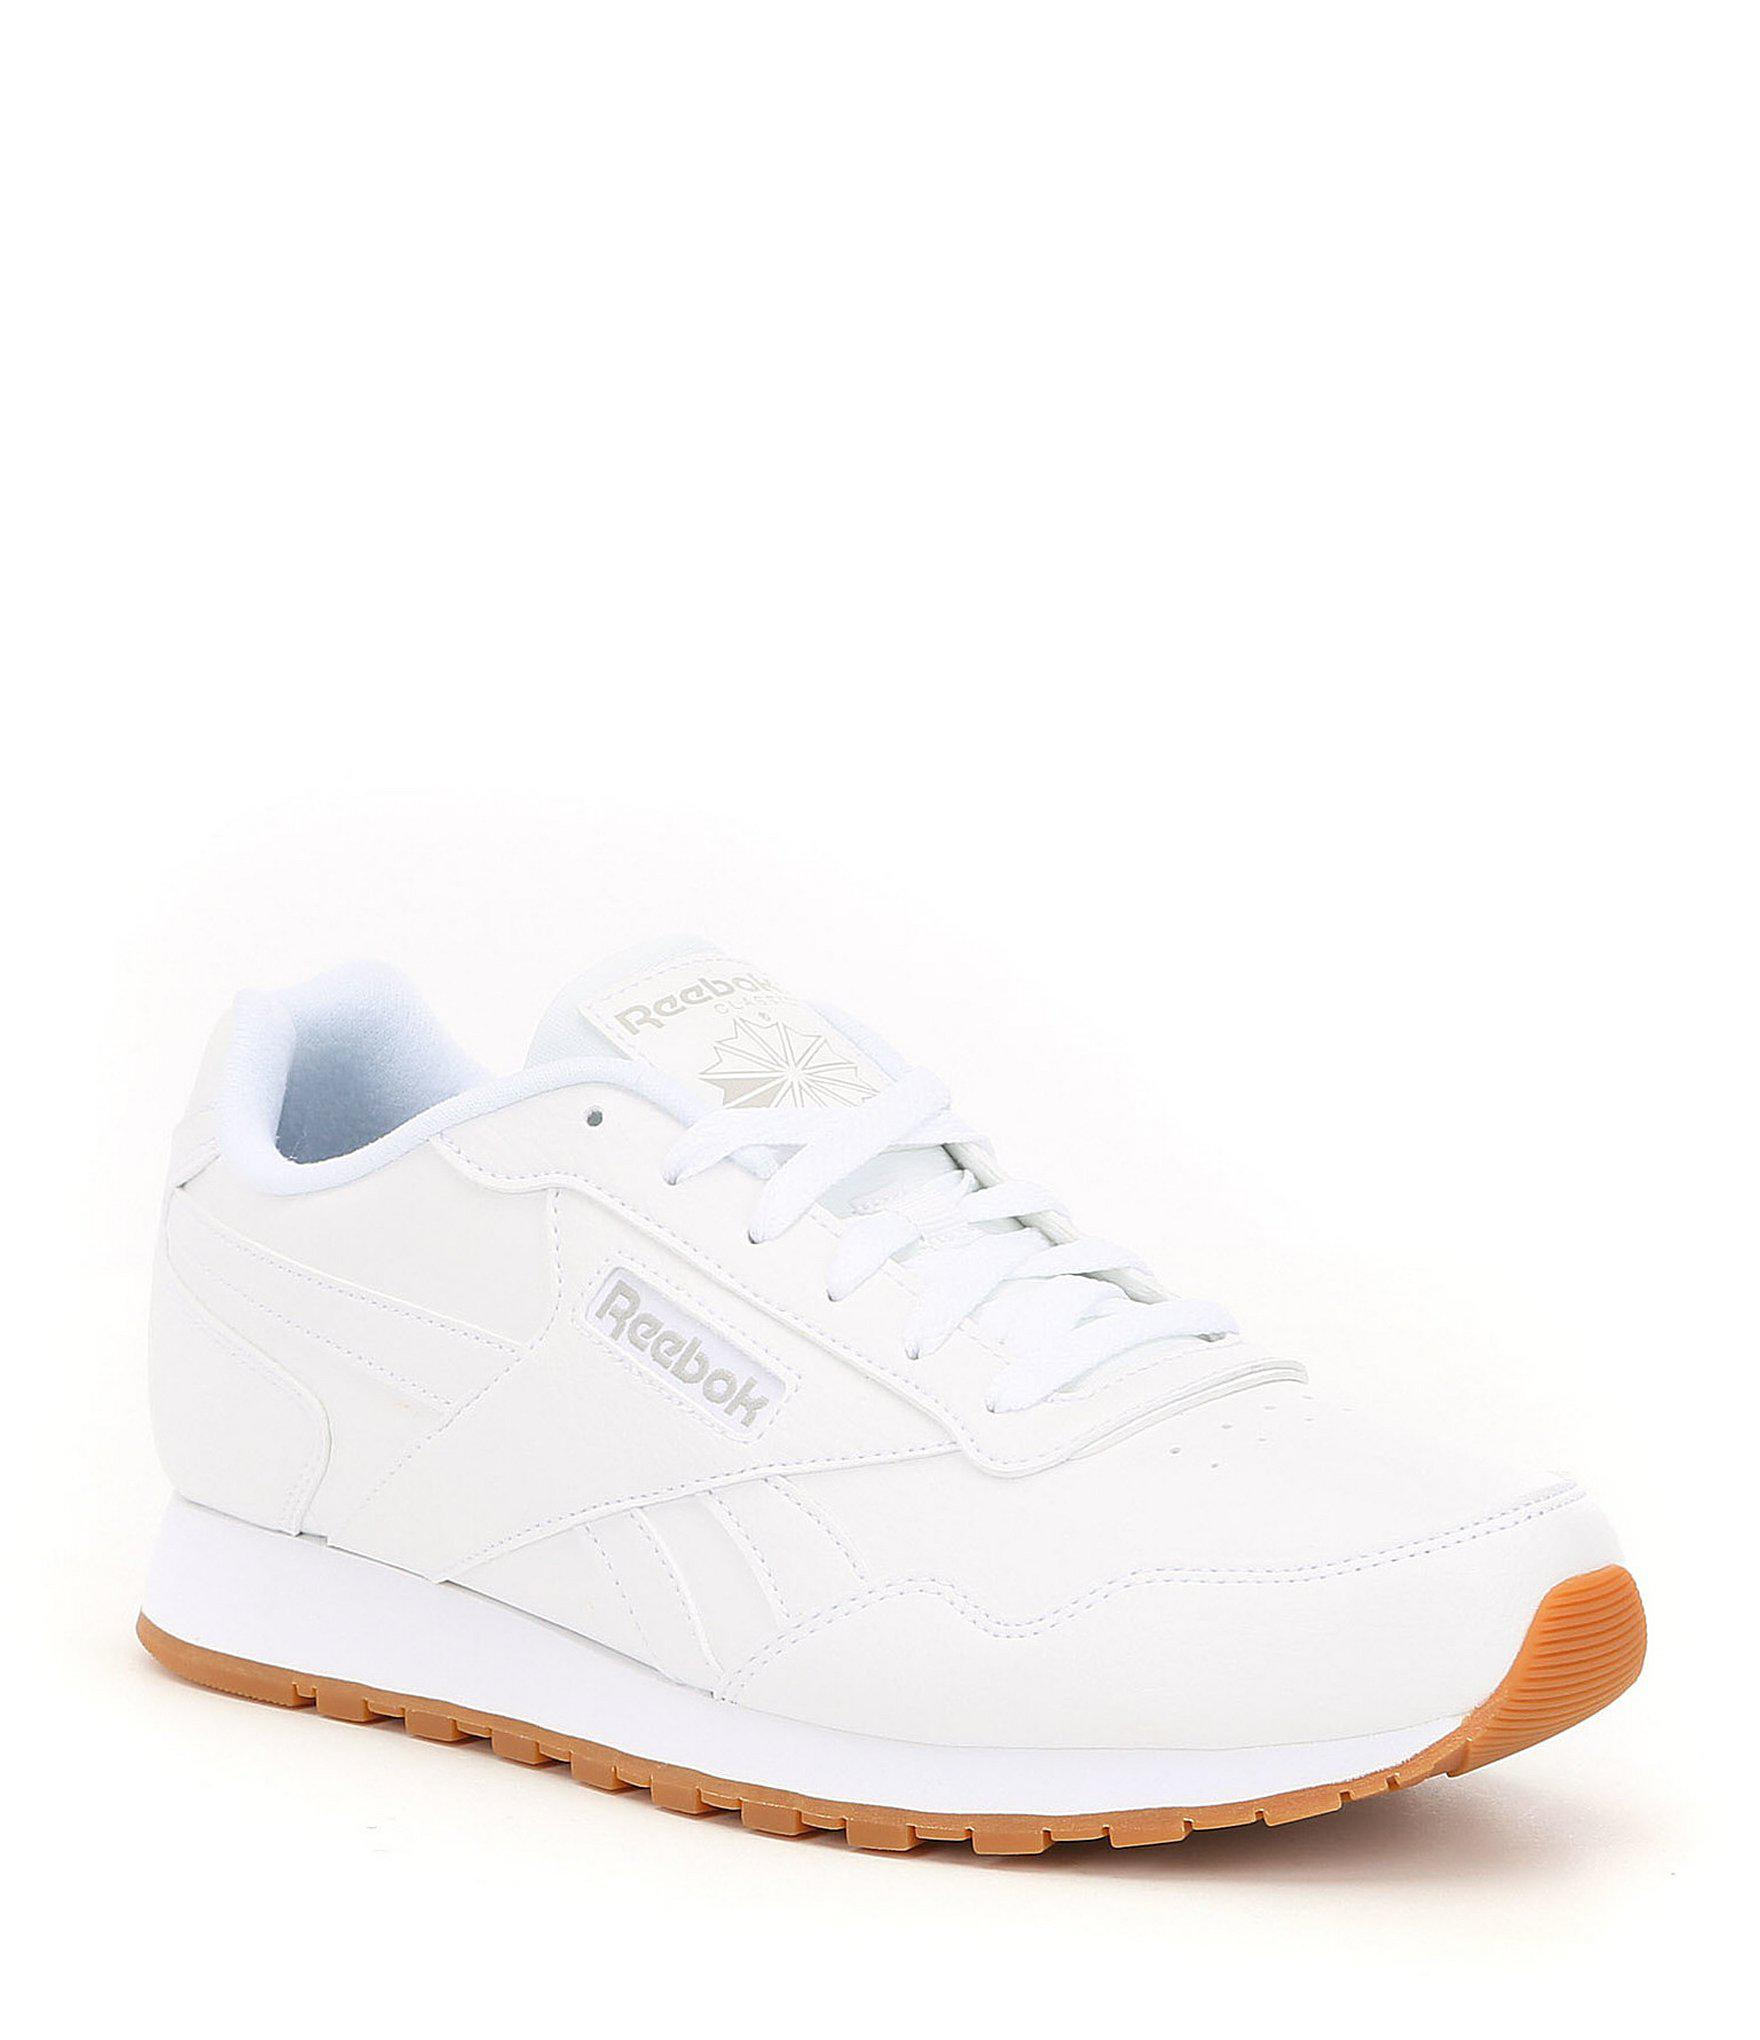 a688182d2486 Reebok - White Men ́s Classic Harman Run Shoes for Men - Lyst. View  fullscreen